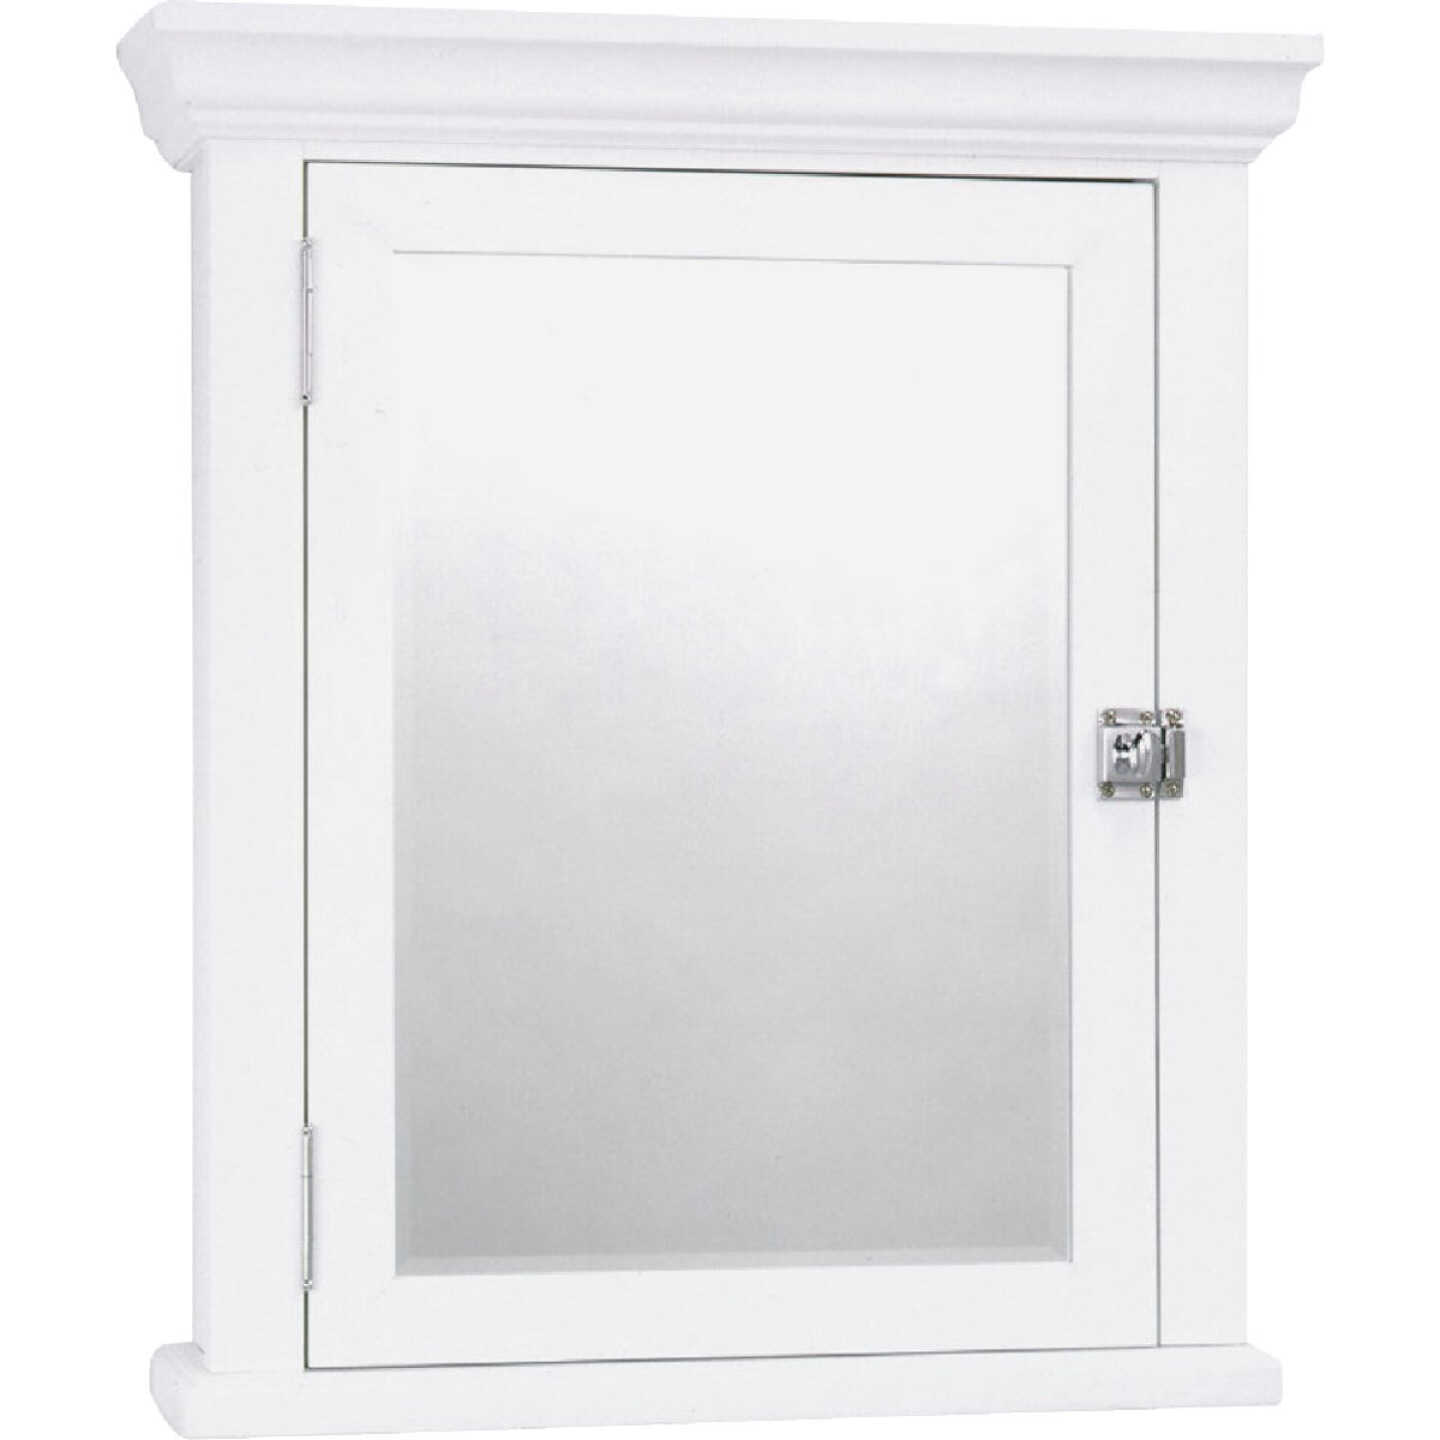 Zenith American White 22.25 In. W x 27.25 In. H x 5.75 In. D Single Mirror Surface Mount Crown Pediment Medicine Cabinet Image 1